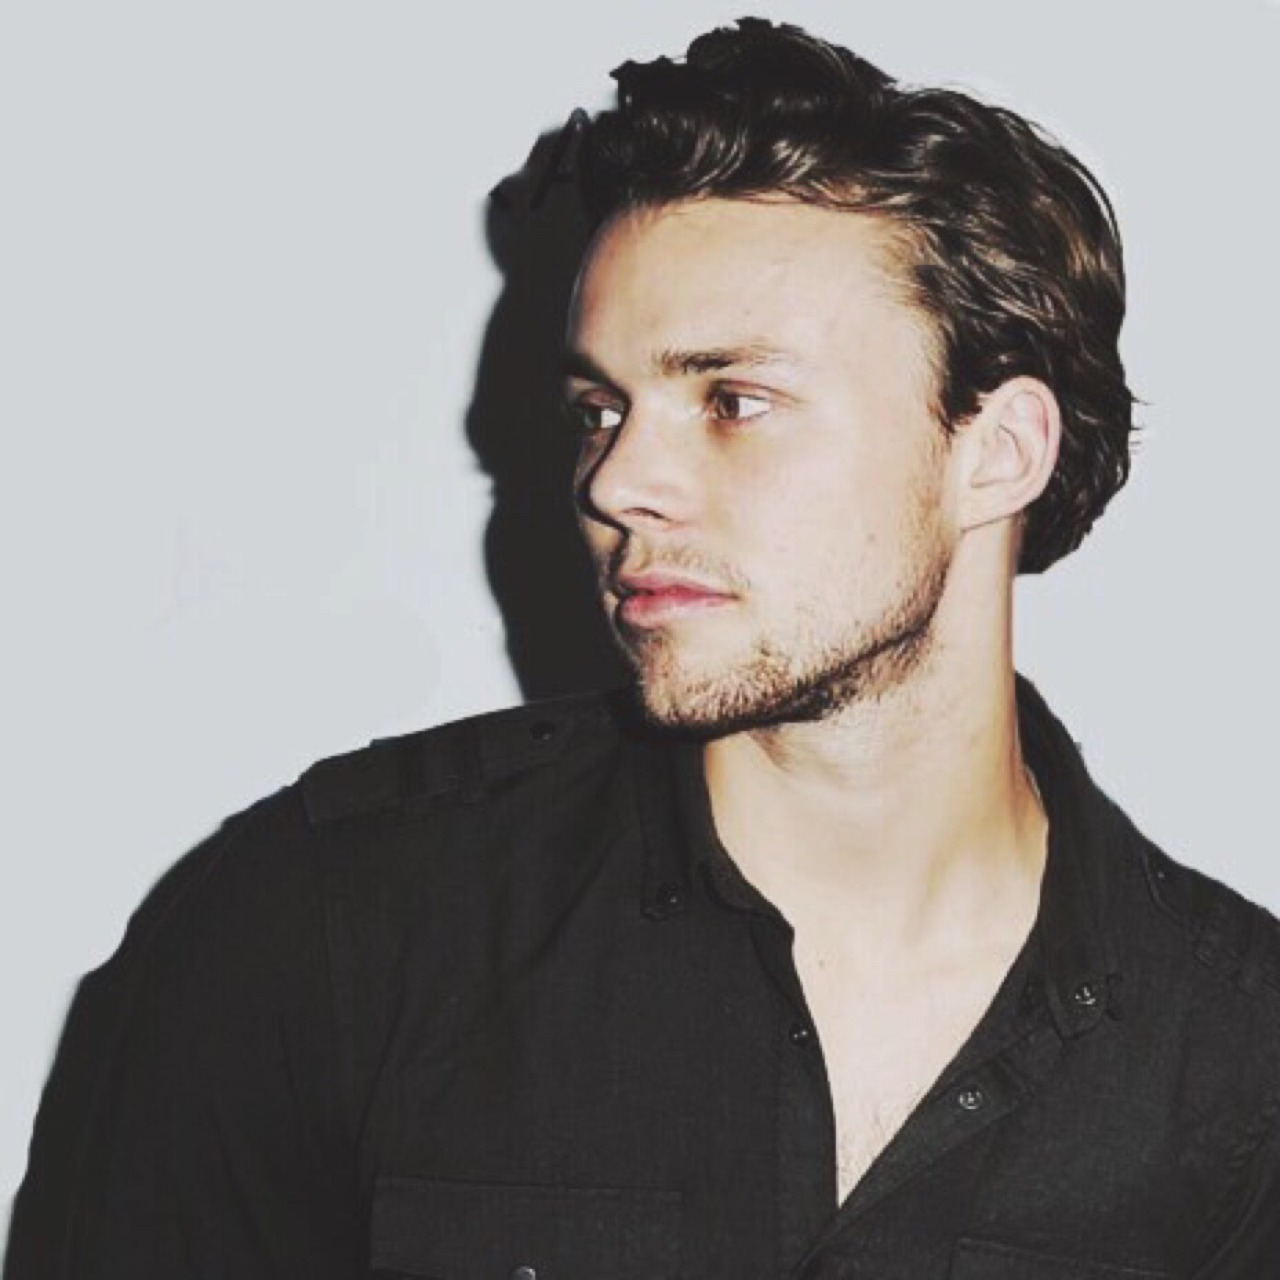 ashton irwin View and download ashton irwin minecraft skins thank you for visiting minecraftskinscom - skindex, the source for minecraft skins.